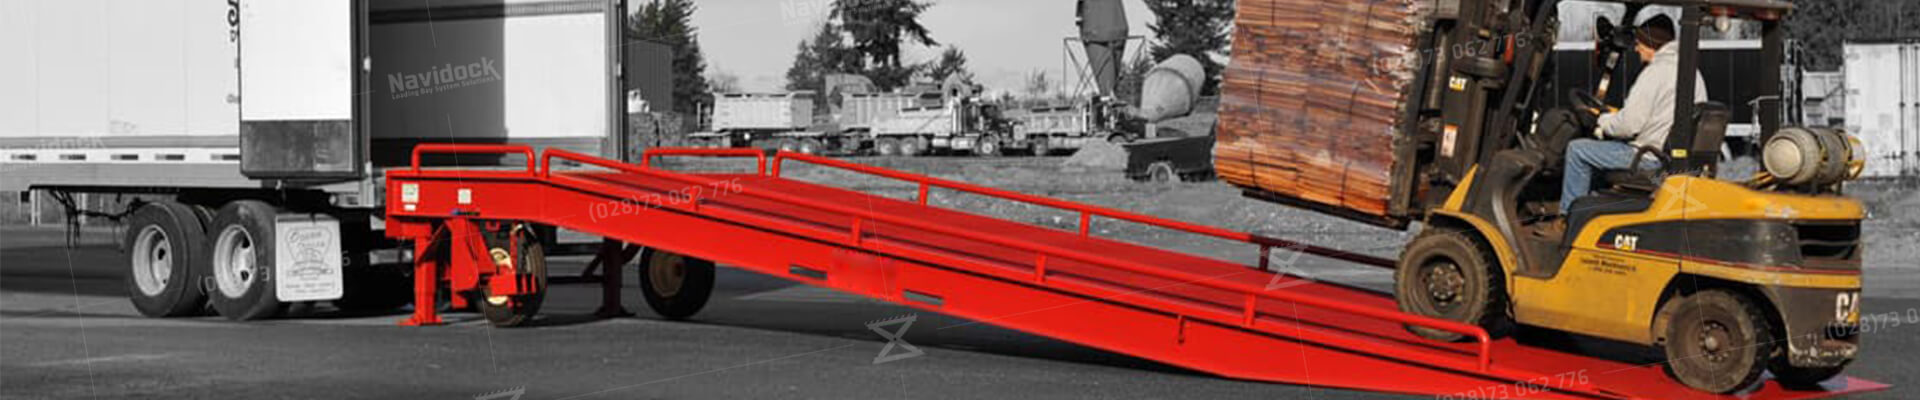 Mobile Ramp NaviDock